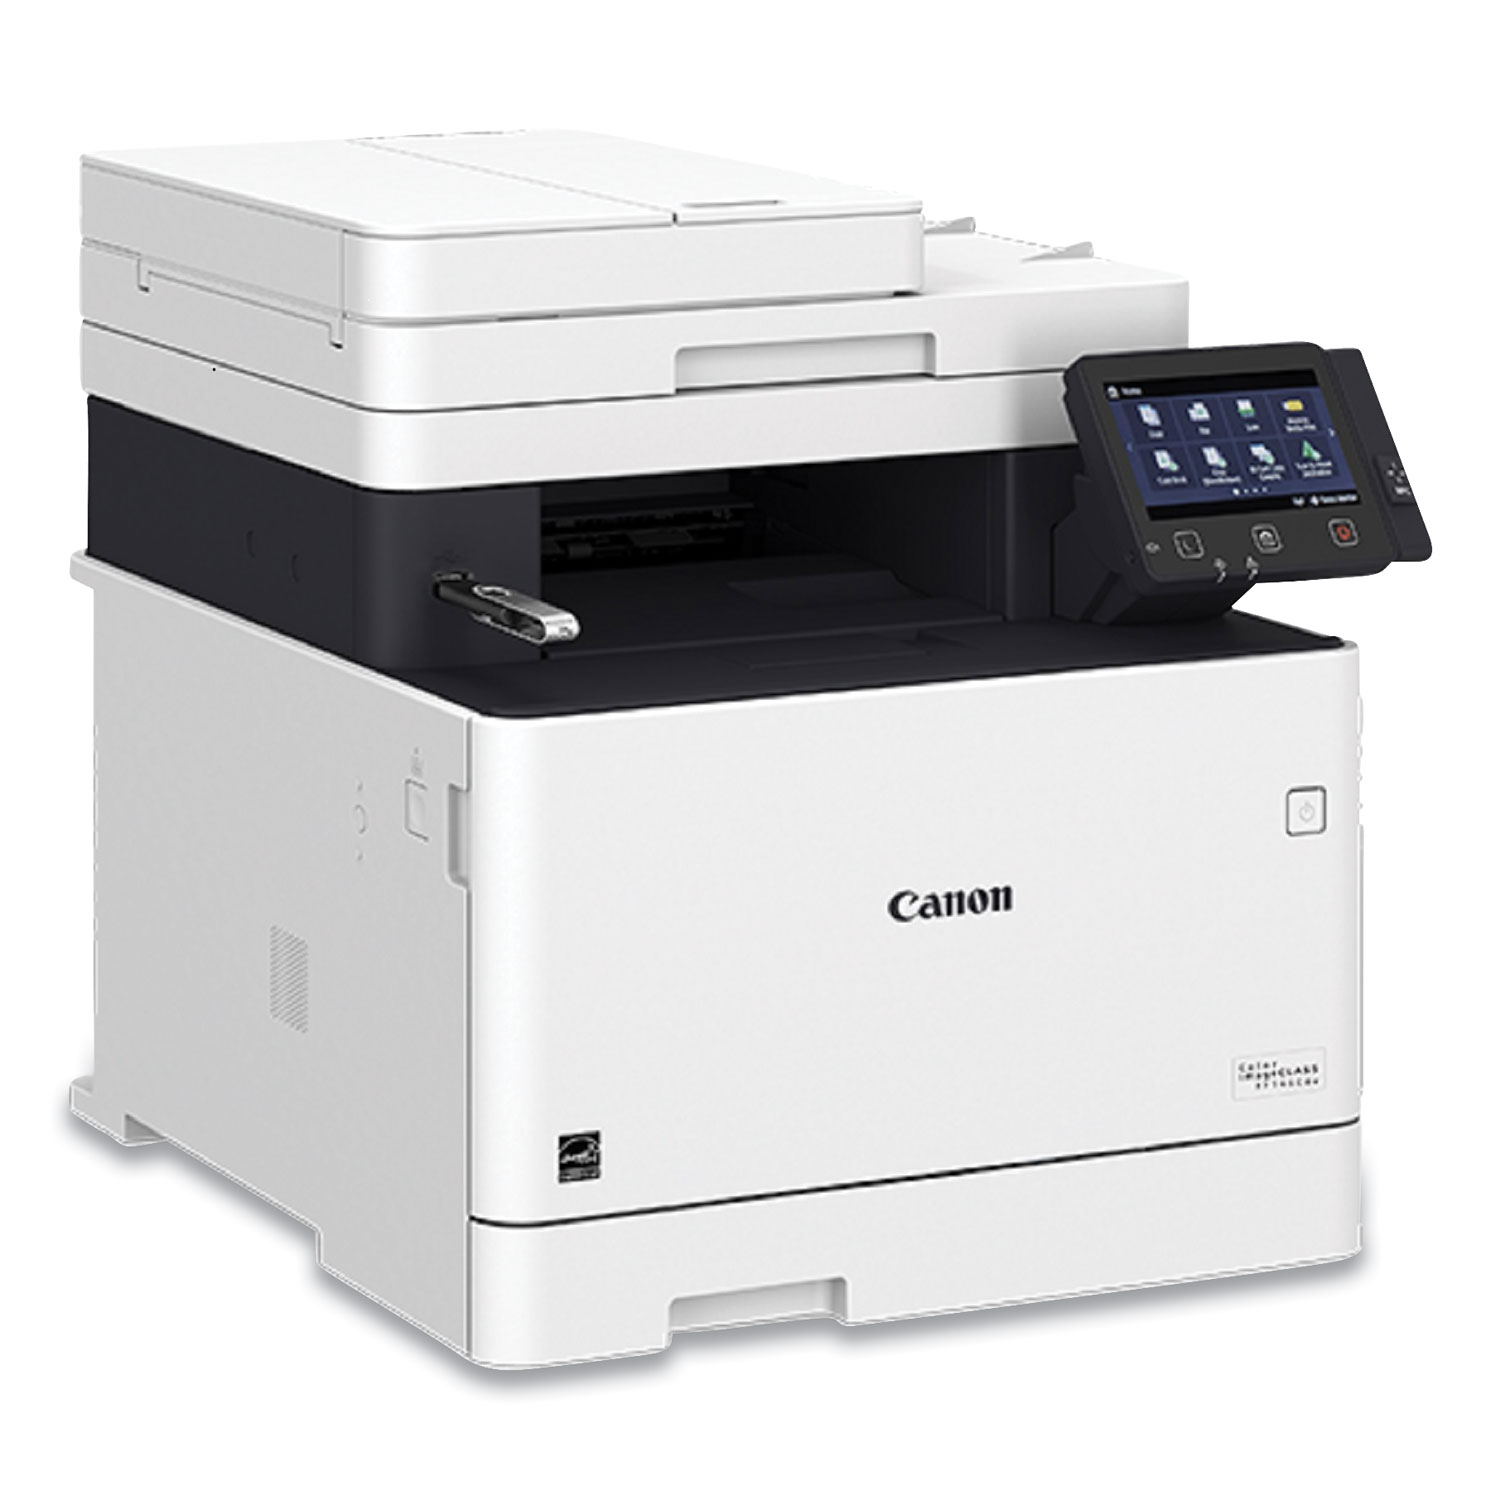 Canon® Color imageCLASS MF745cdw All in One, Wireless, Color Duplex Laser Printer, Copy; Fax; Print; Scan